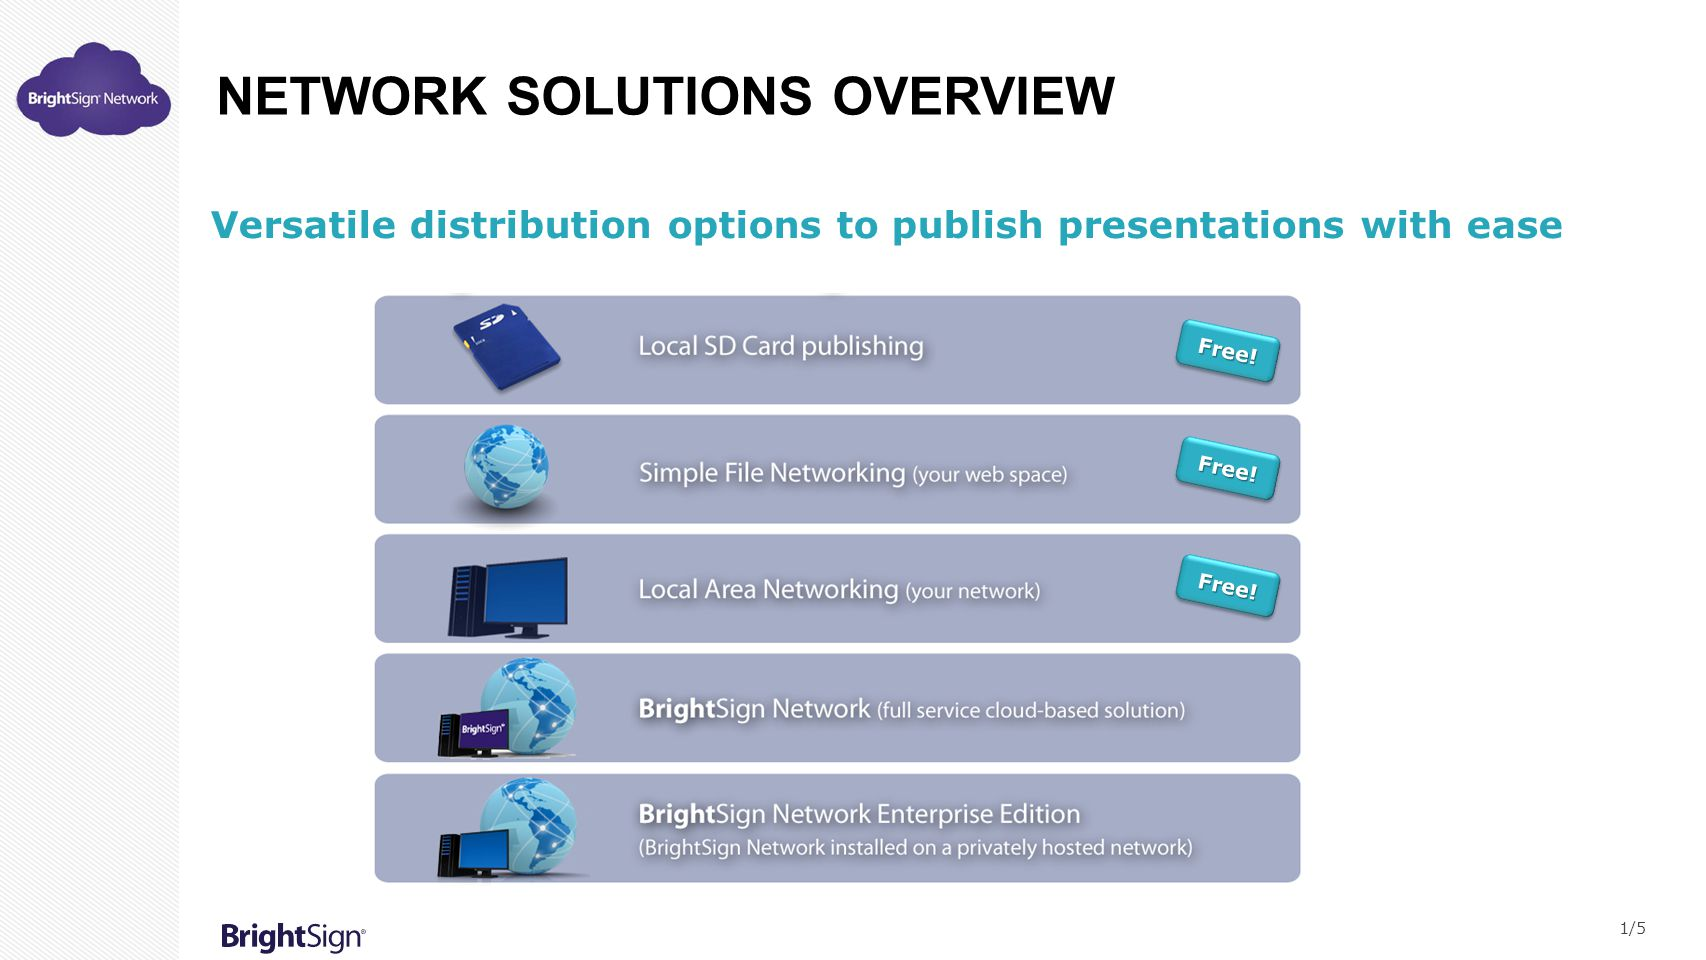 Network Solutions Overview